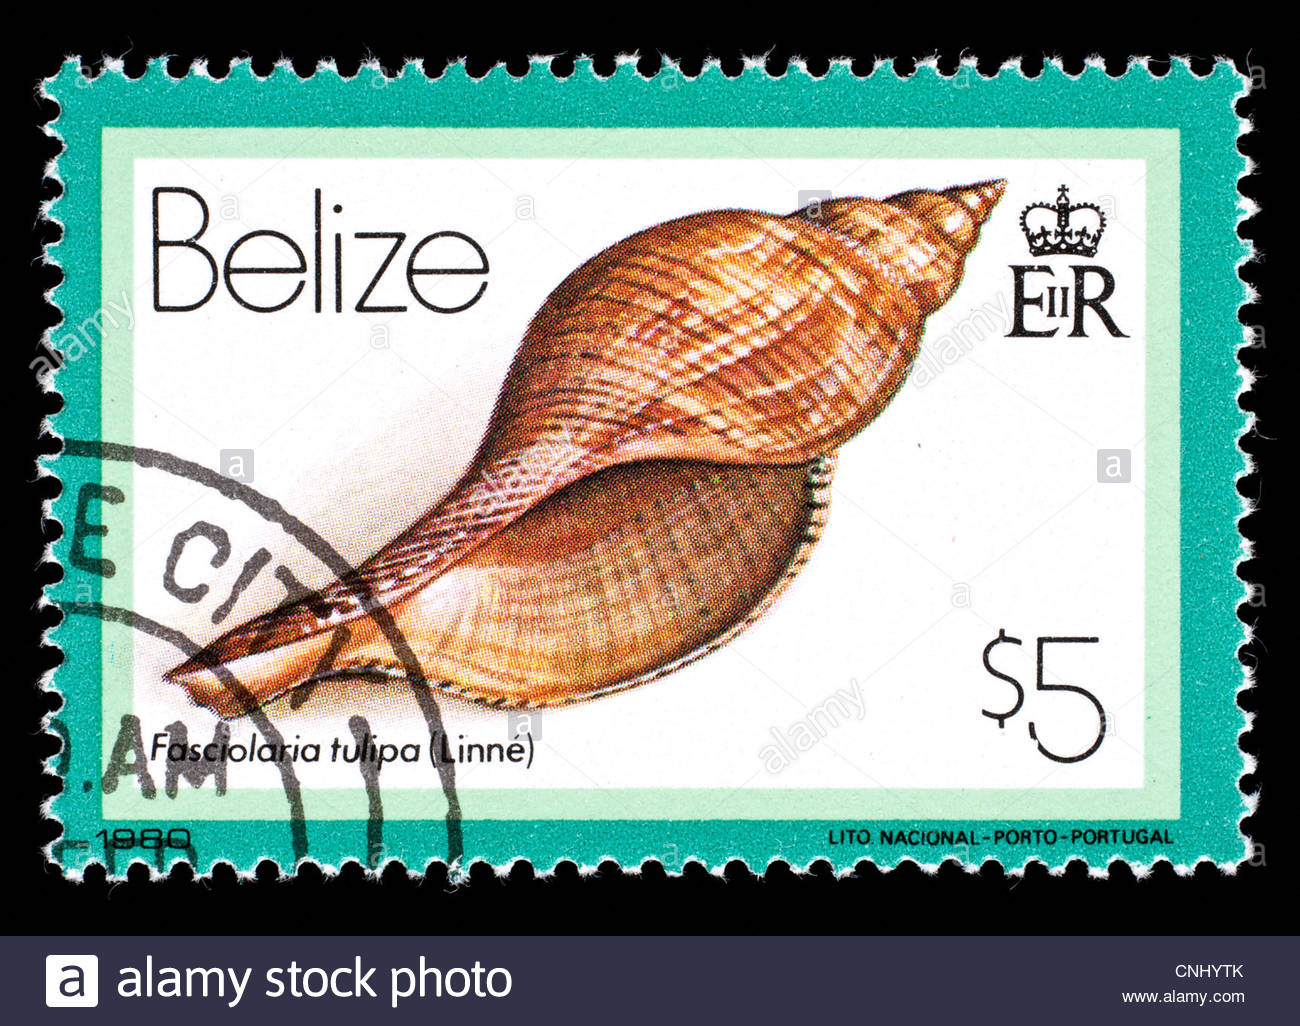 Postage Stamp From Belize Depicting A True Tulip Sea Snail Stock.